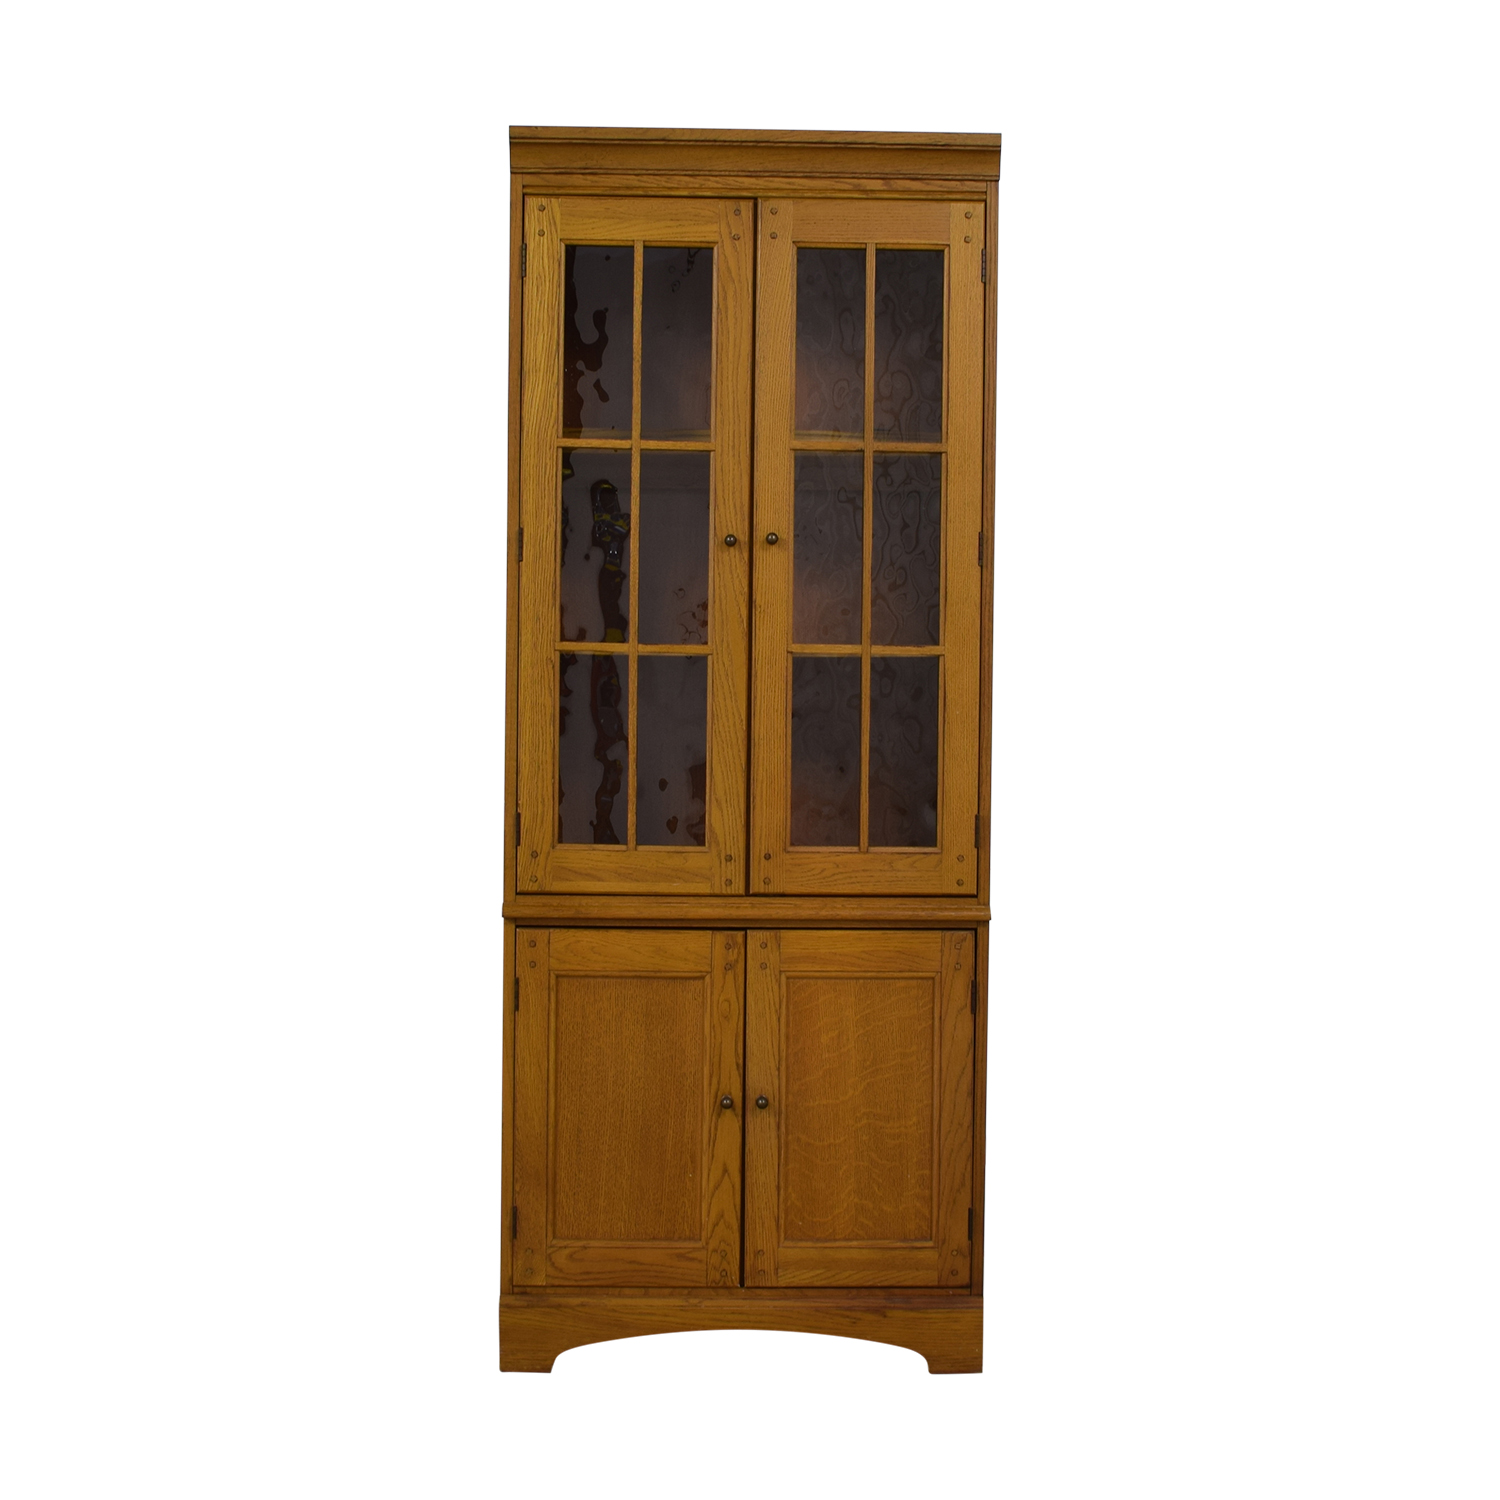 Hooker Furniture Hooker Furniture Oak and Glass Lighted Cabinet coupon